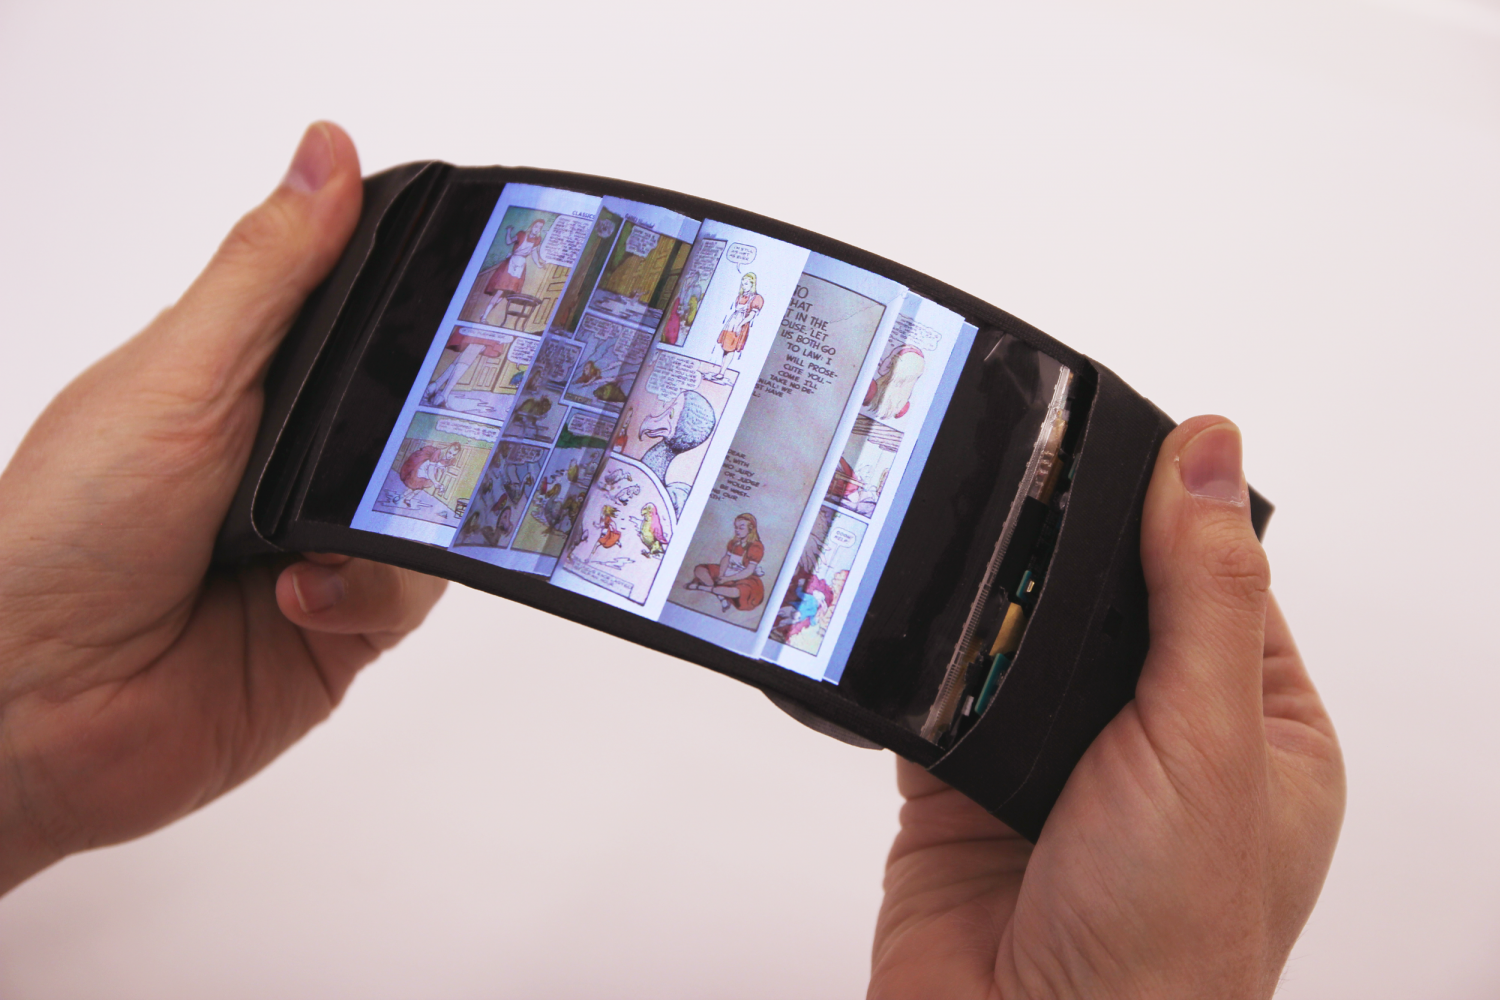 ReFlex: Revolutionary flexible smartphone allows users to ...